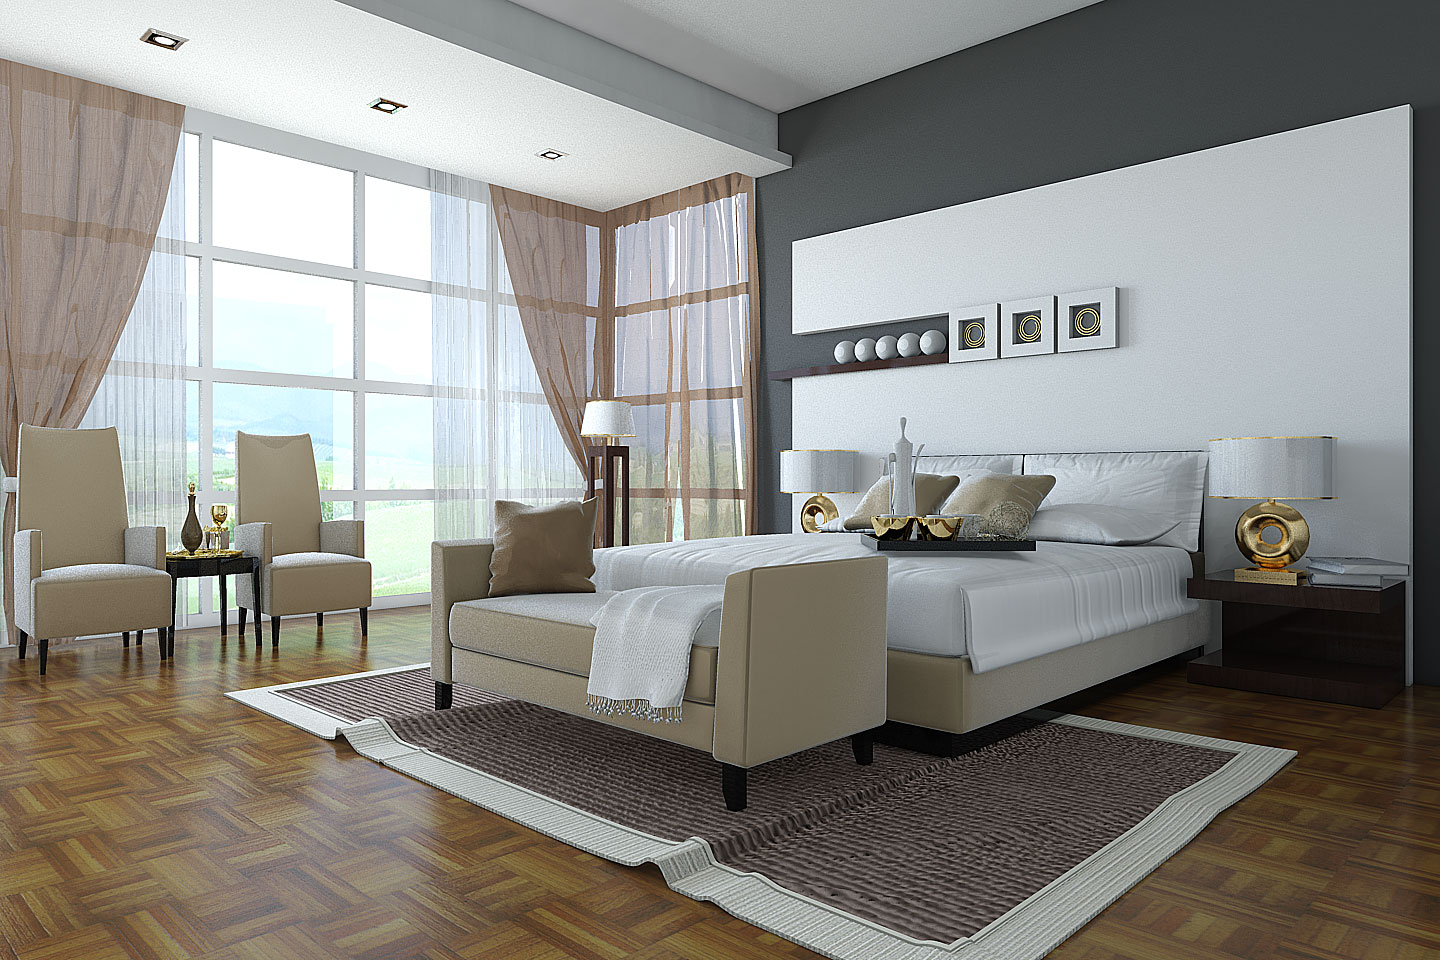 Curtains Ideas rattan curtains : Soft, Fresh & Classic. [Design by Ferry Sugianto ]